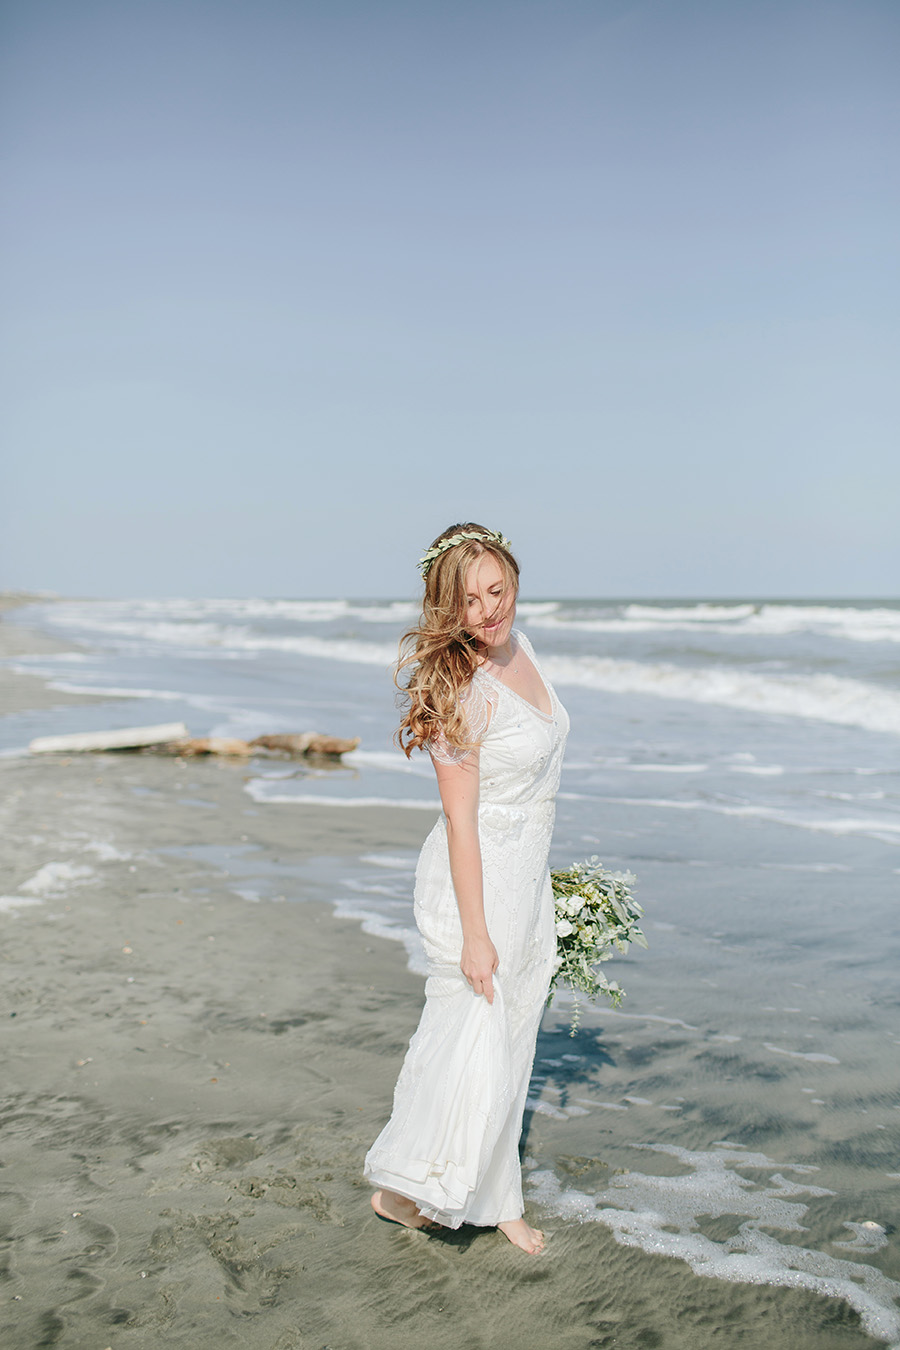 DavisWedding - Alicia White Photography-545.jpg